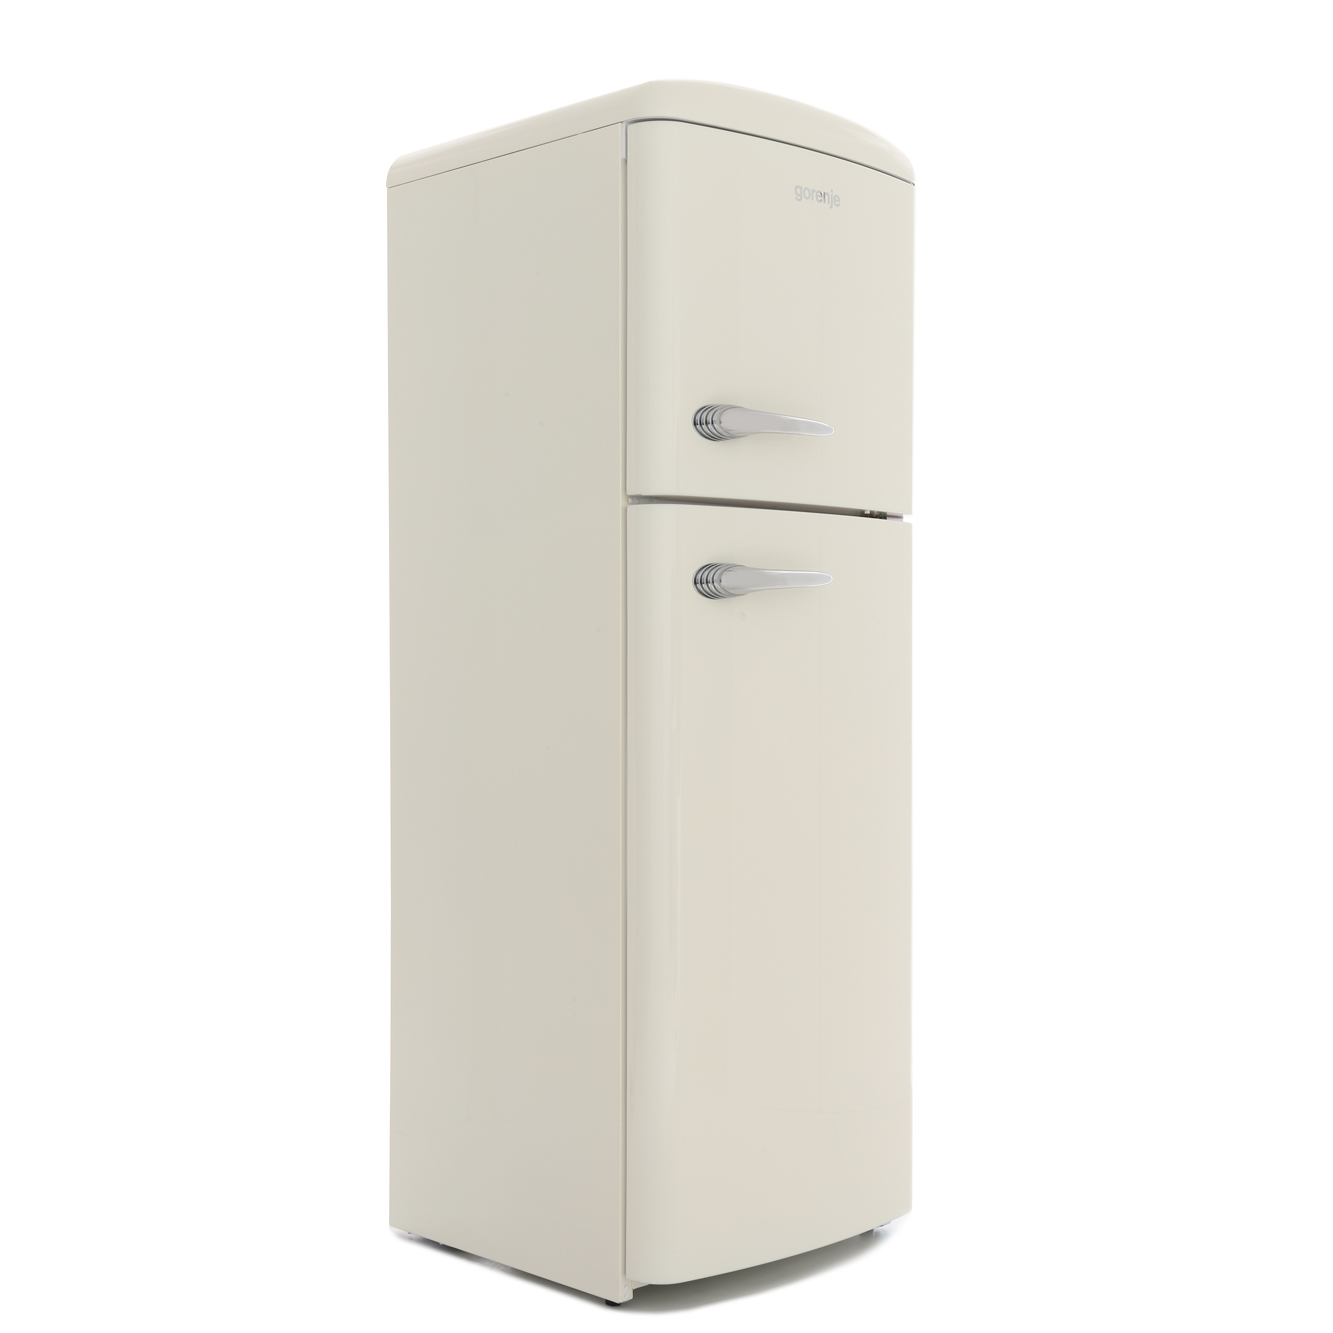 buy gorenje retro vintage rf60309oc fridge freezer rf60309oc cream marks electrical. Black Bedroom Furniture Sets. Home Design Ideas